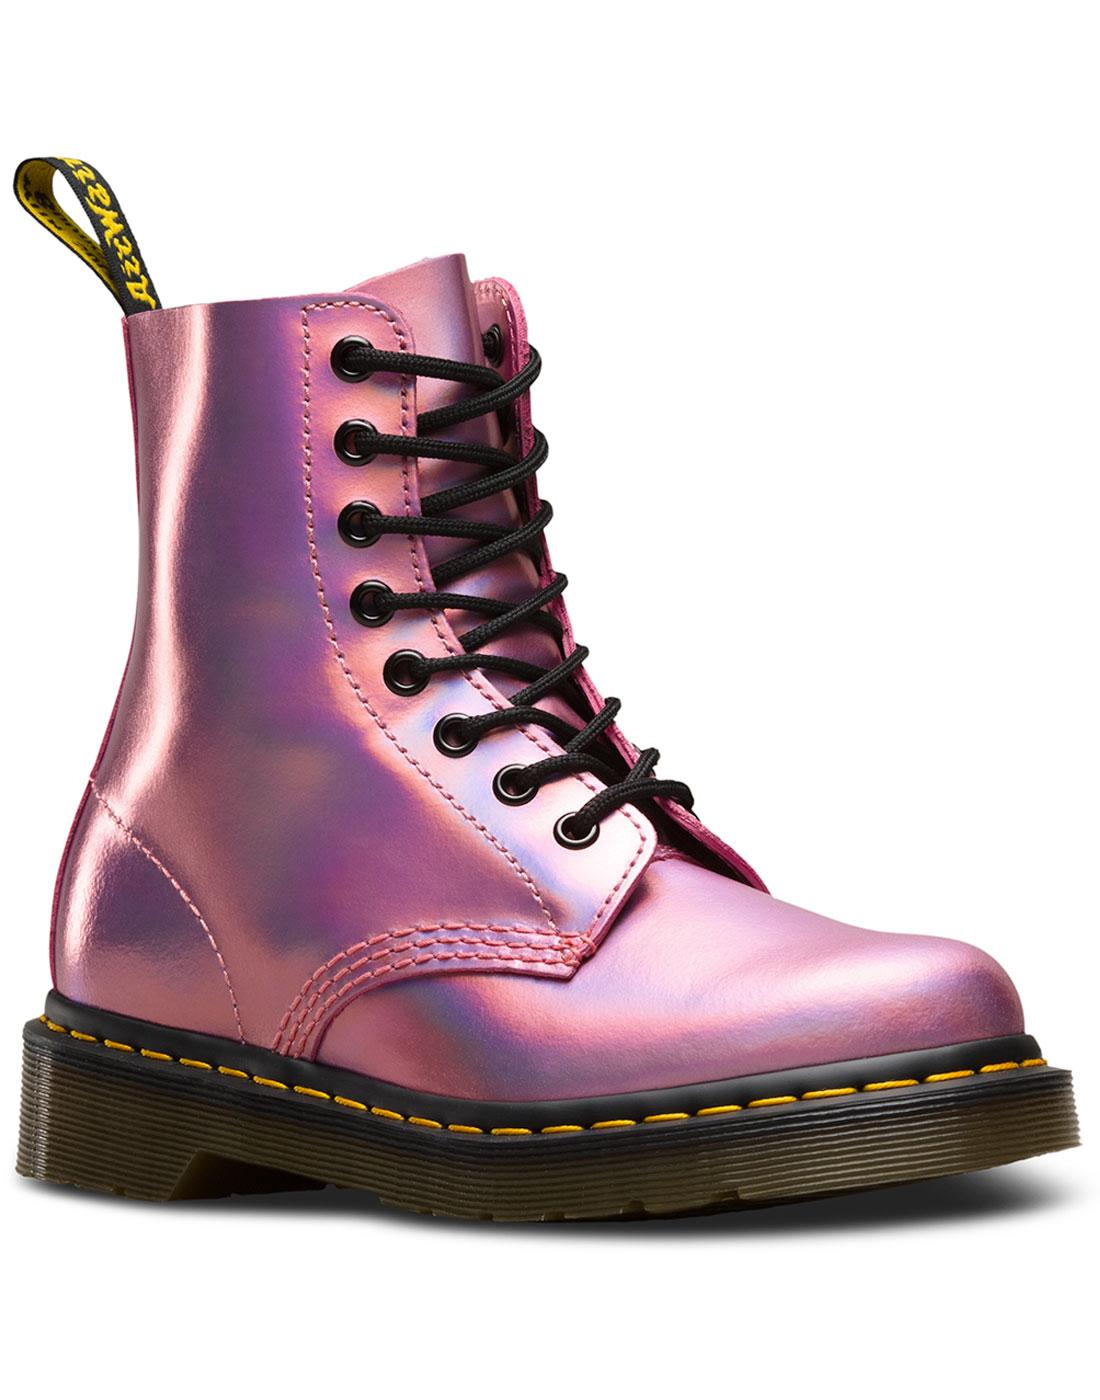 DR MARTENS 1460 Pascal Iced Metallic 70s Glam Boots Pink